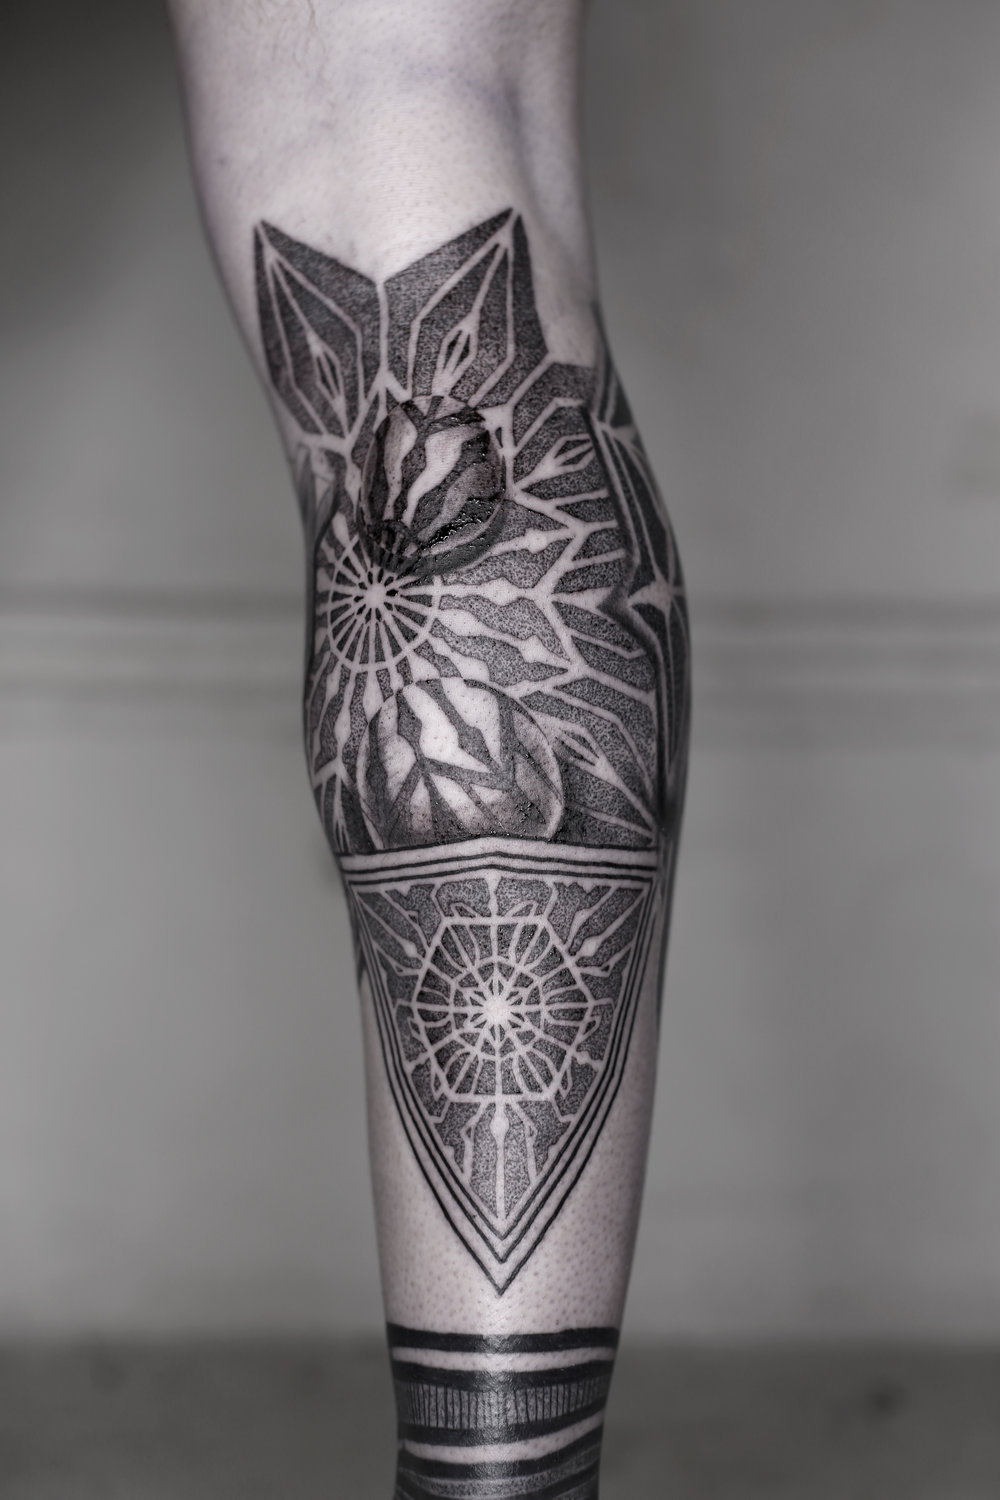 sacrted geomtry ejay tattoo singleton tattoo dallas texas trinity groves mandala patterns best of art ink koneko little linda.jpg